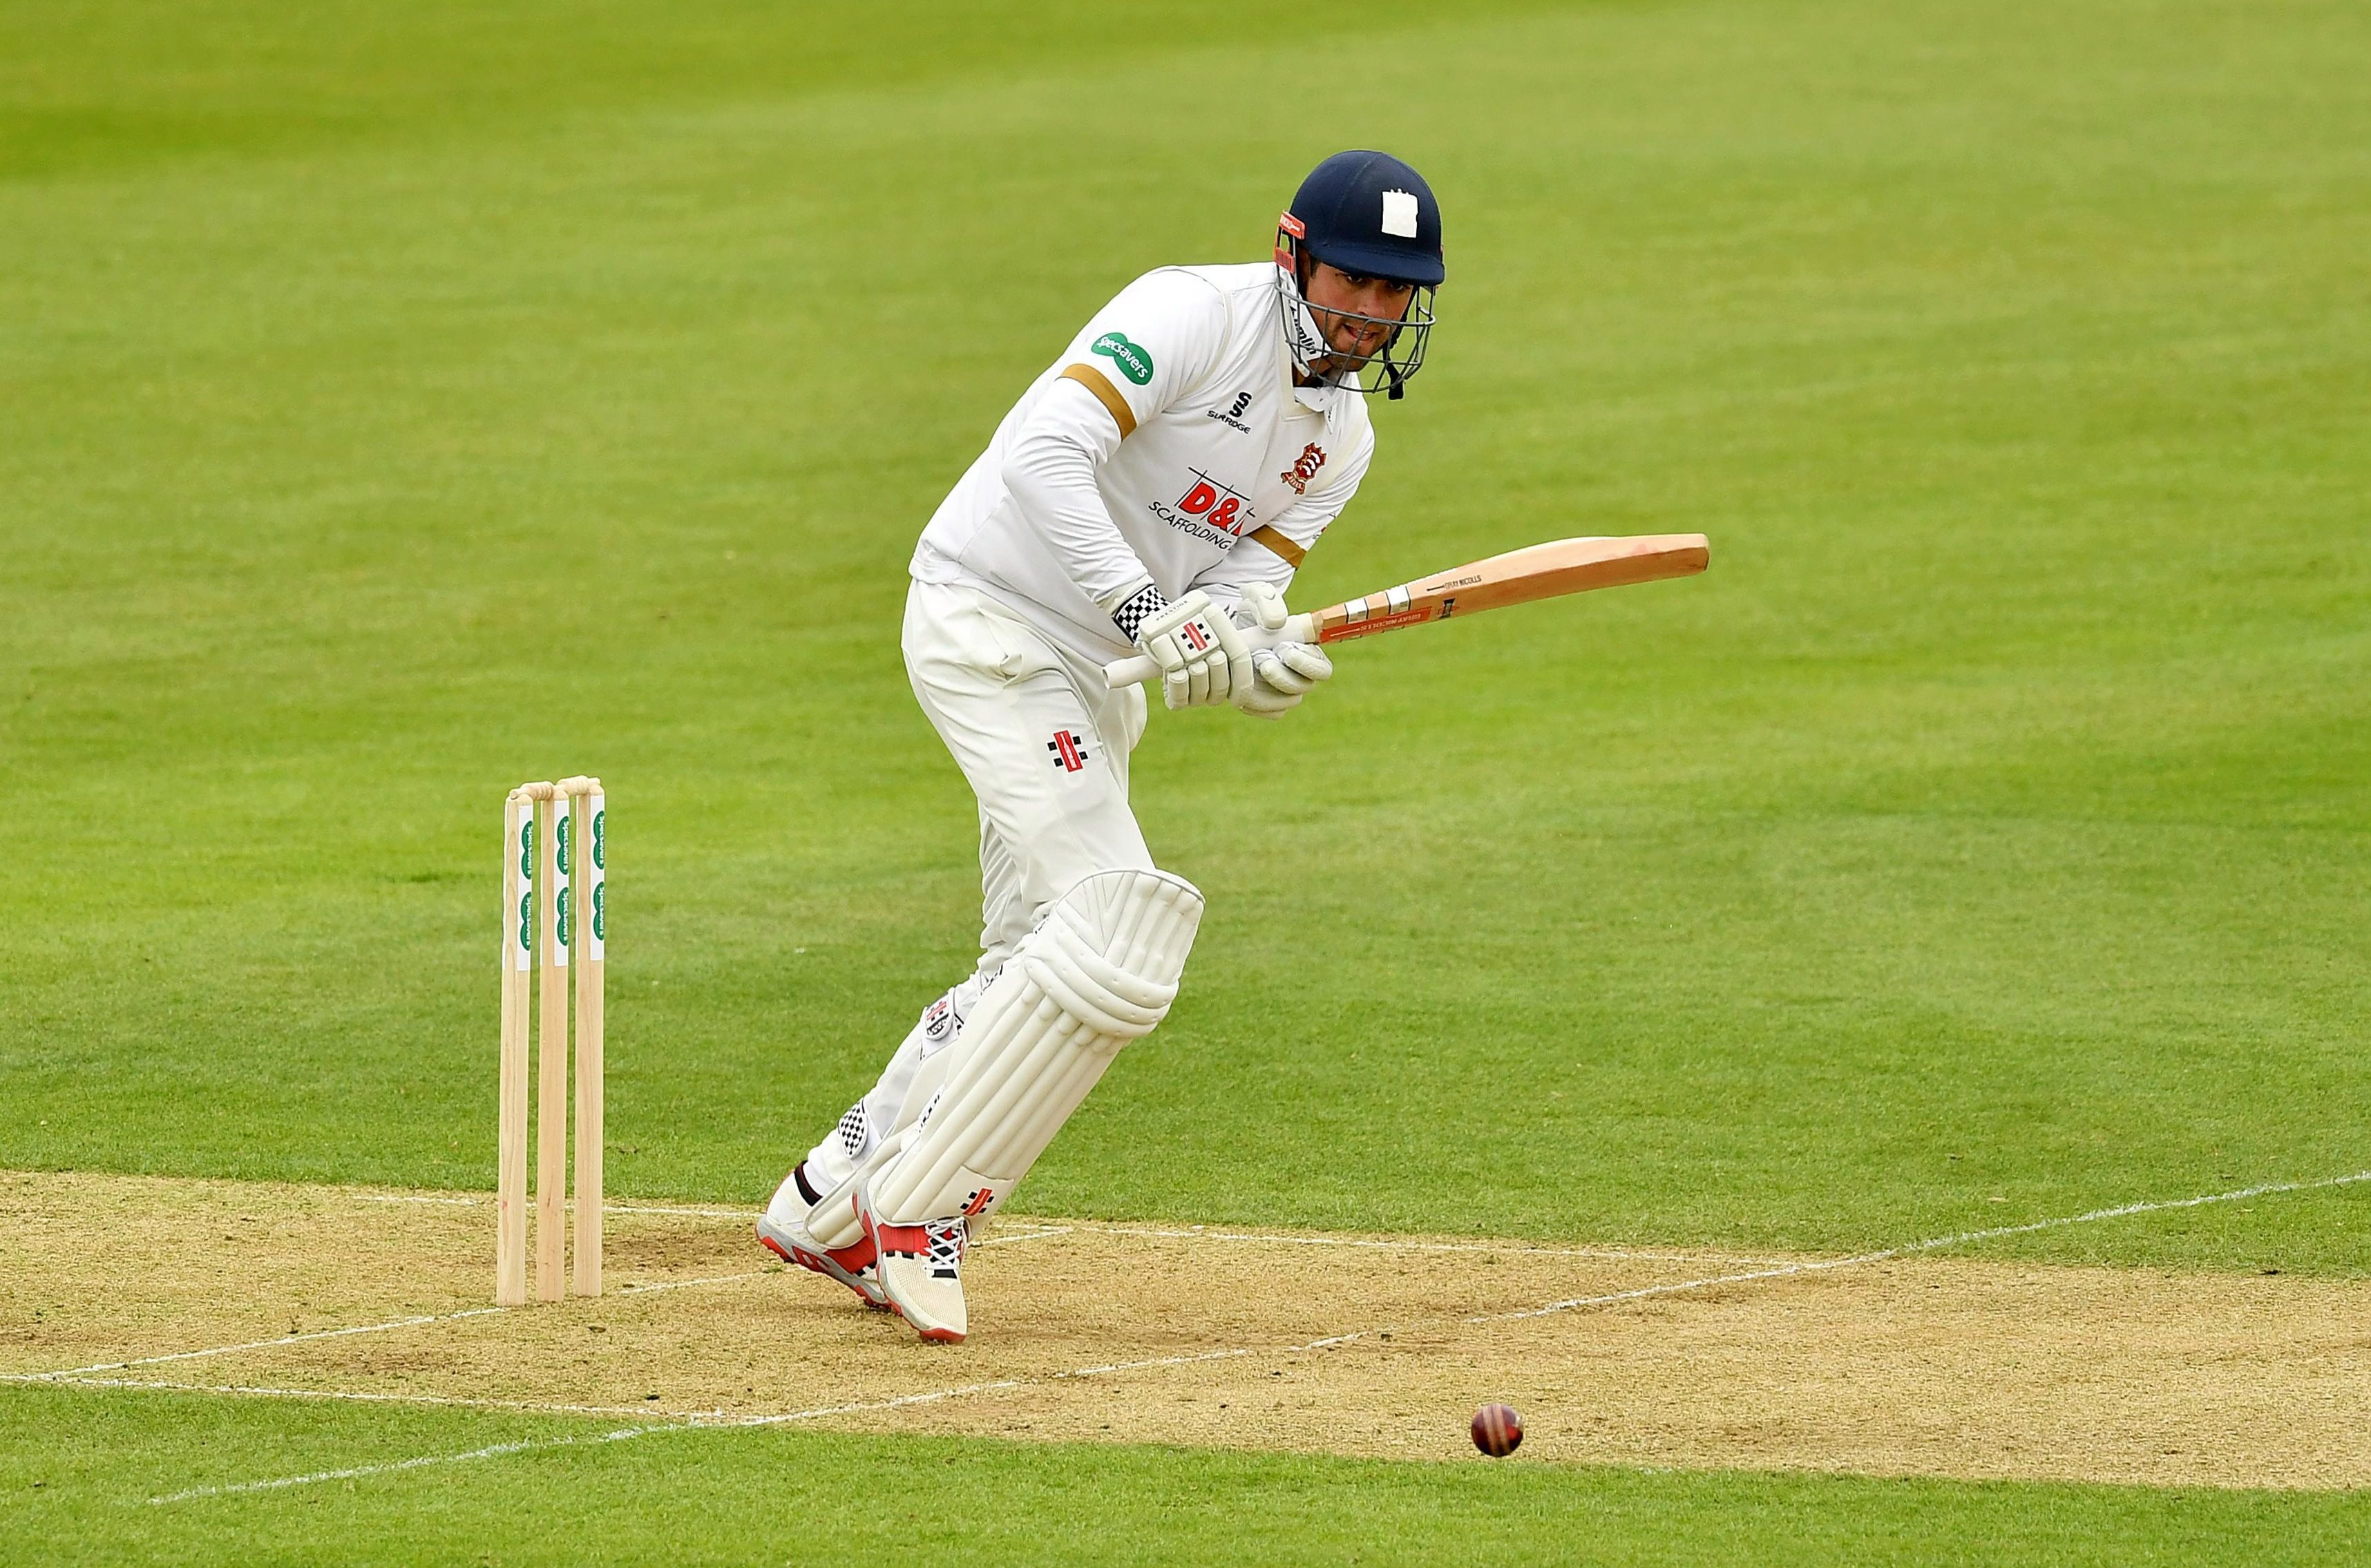 Cook hit 84 as he looks to continue playing for his country